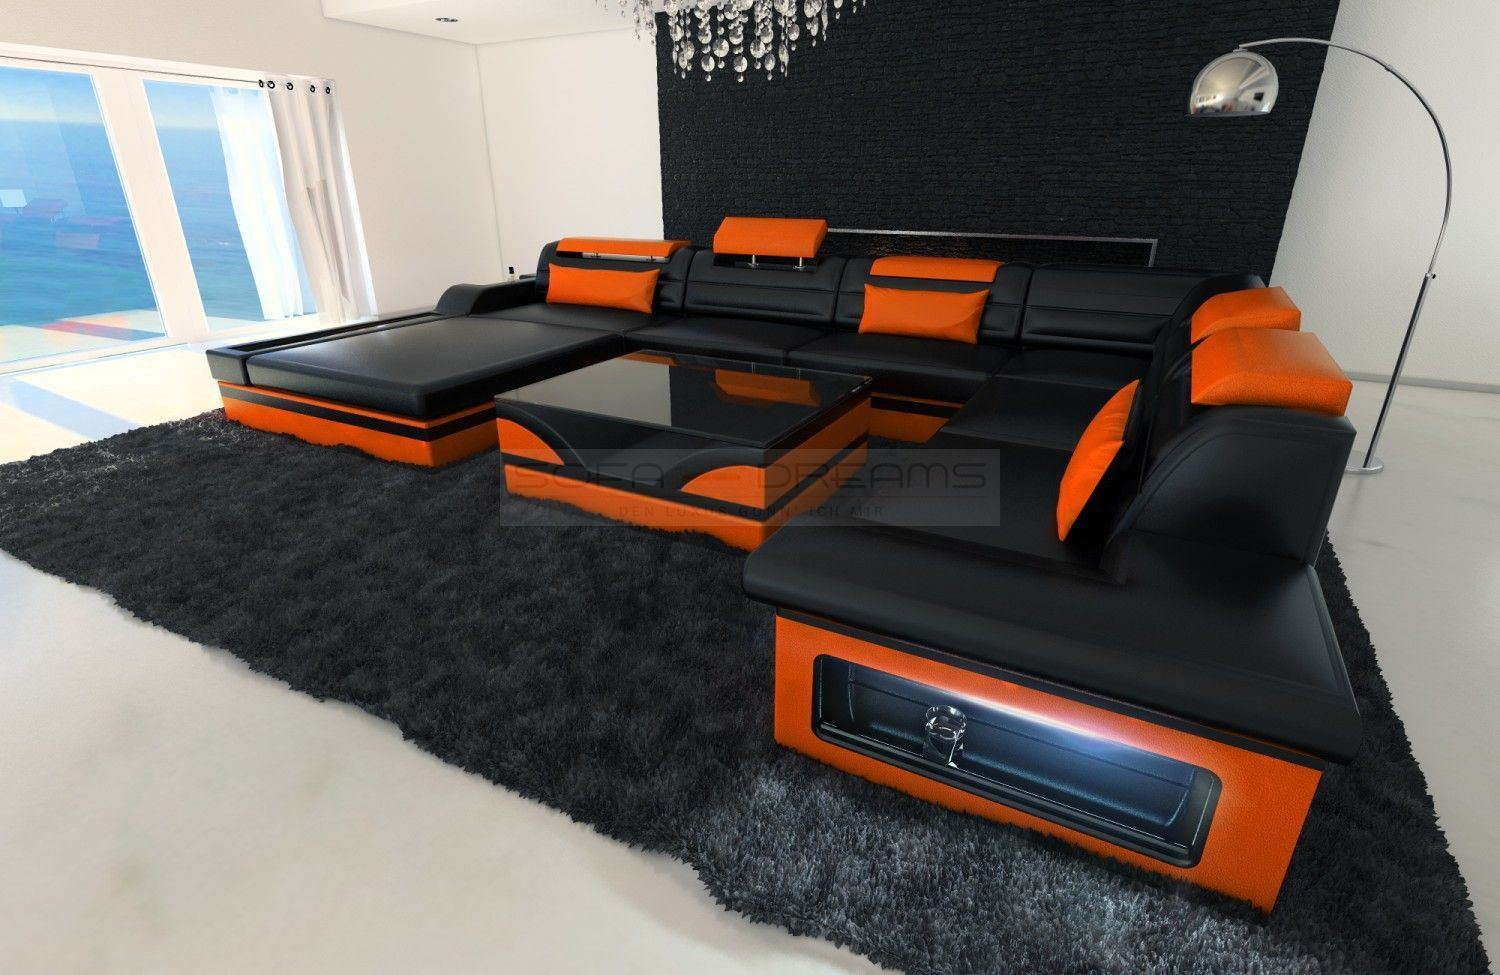 sofas ledersofa leder wohnlandschaft monza u form sofas g nstig online kaufen. Black Bedroom Furniture Sets. Home Design Ideas